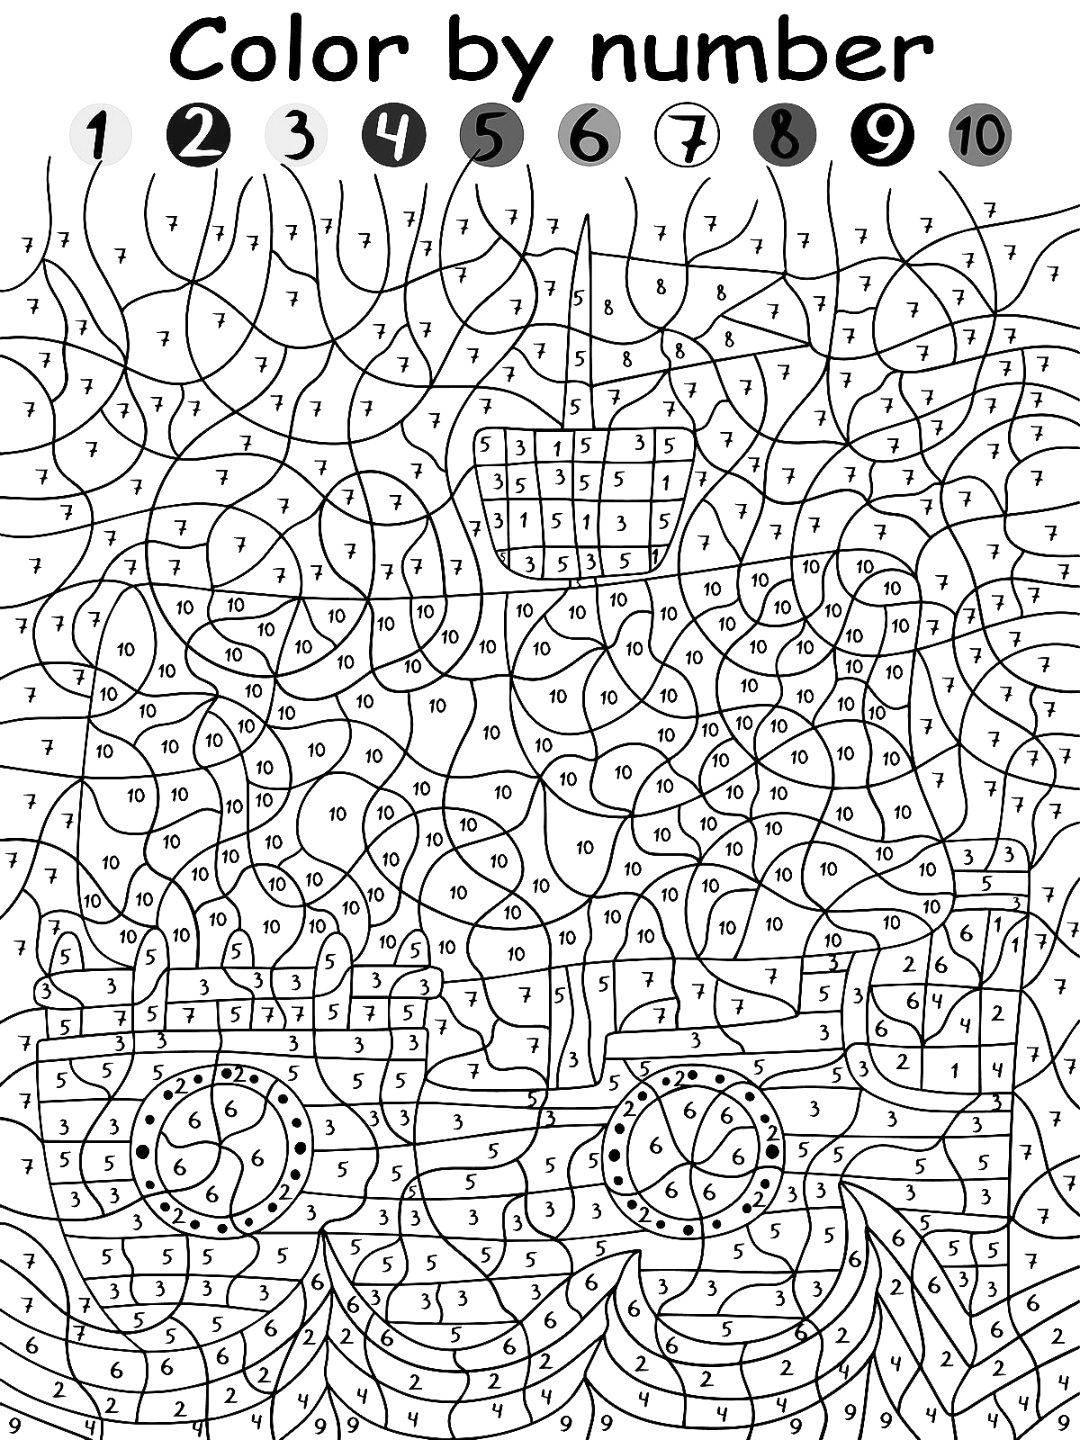 free downloadable color by number printable to print